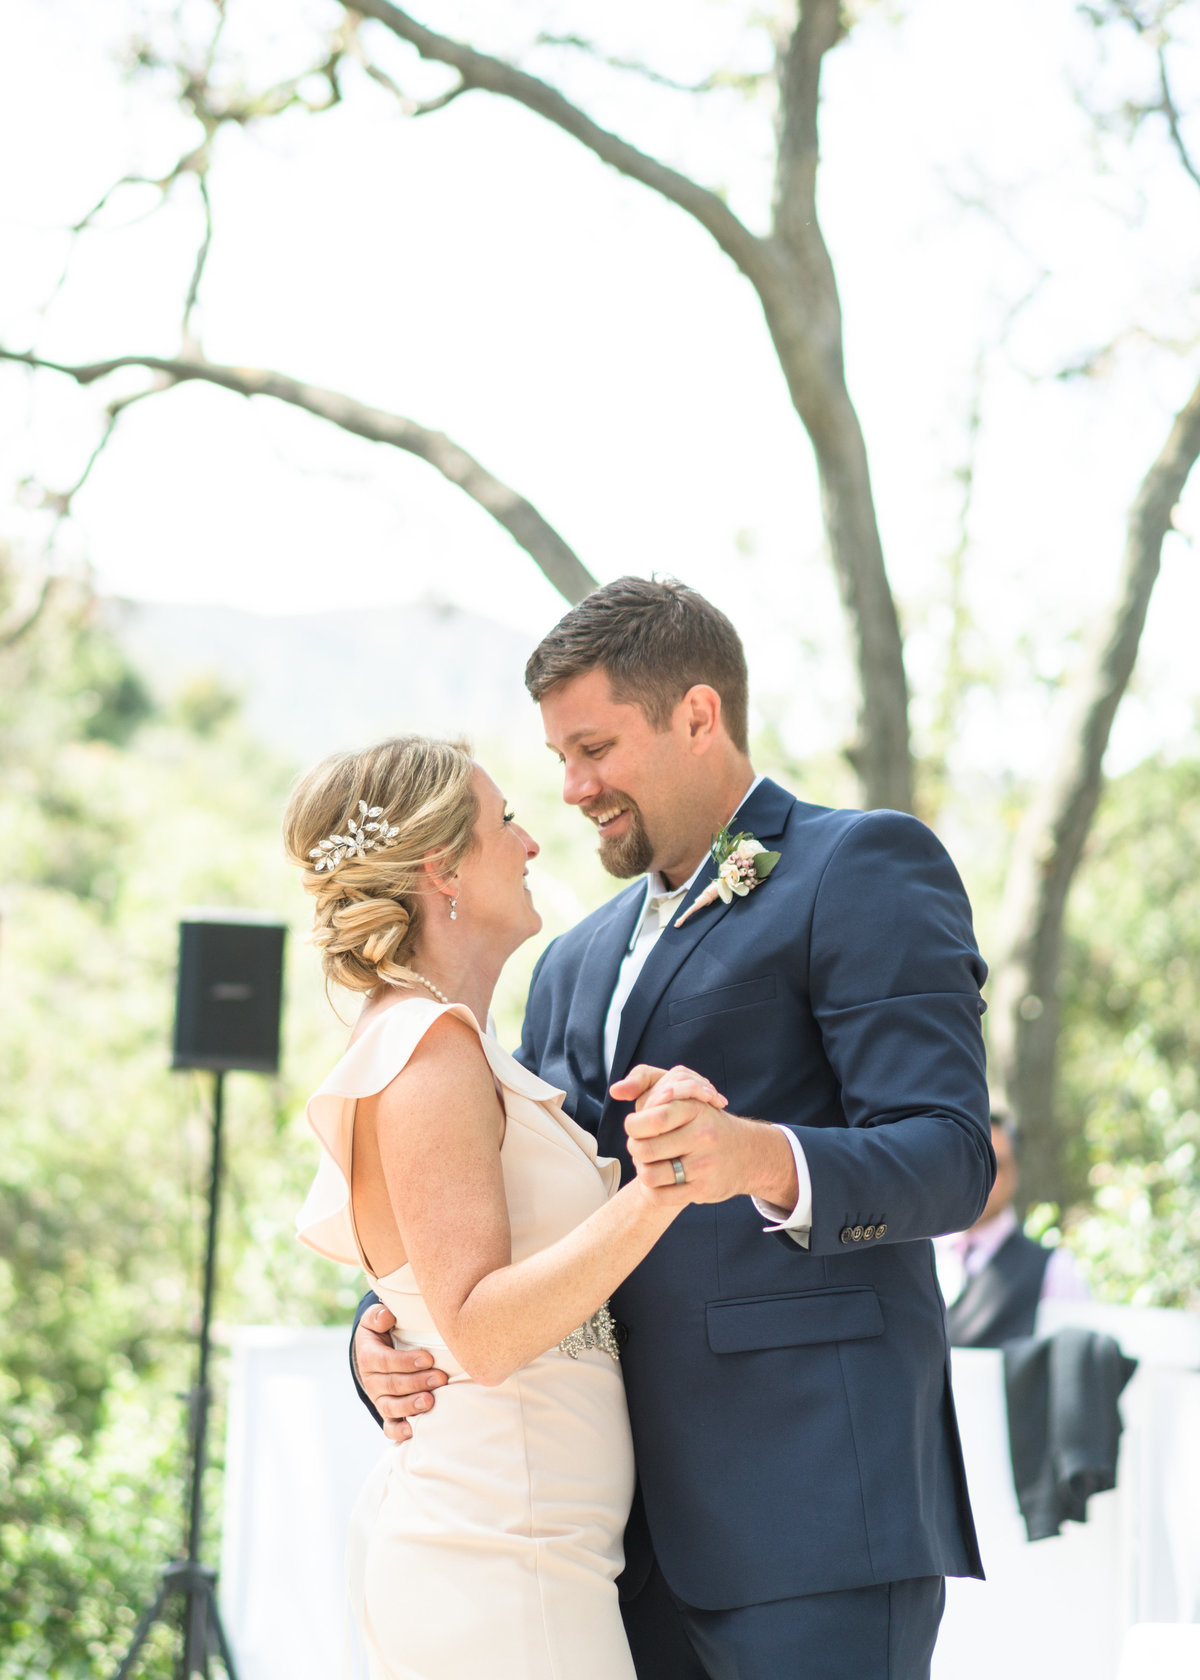 2018-03-18-Wedding-JamieBrownPhotography-504_mini